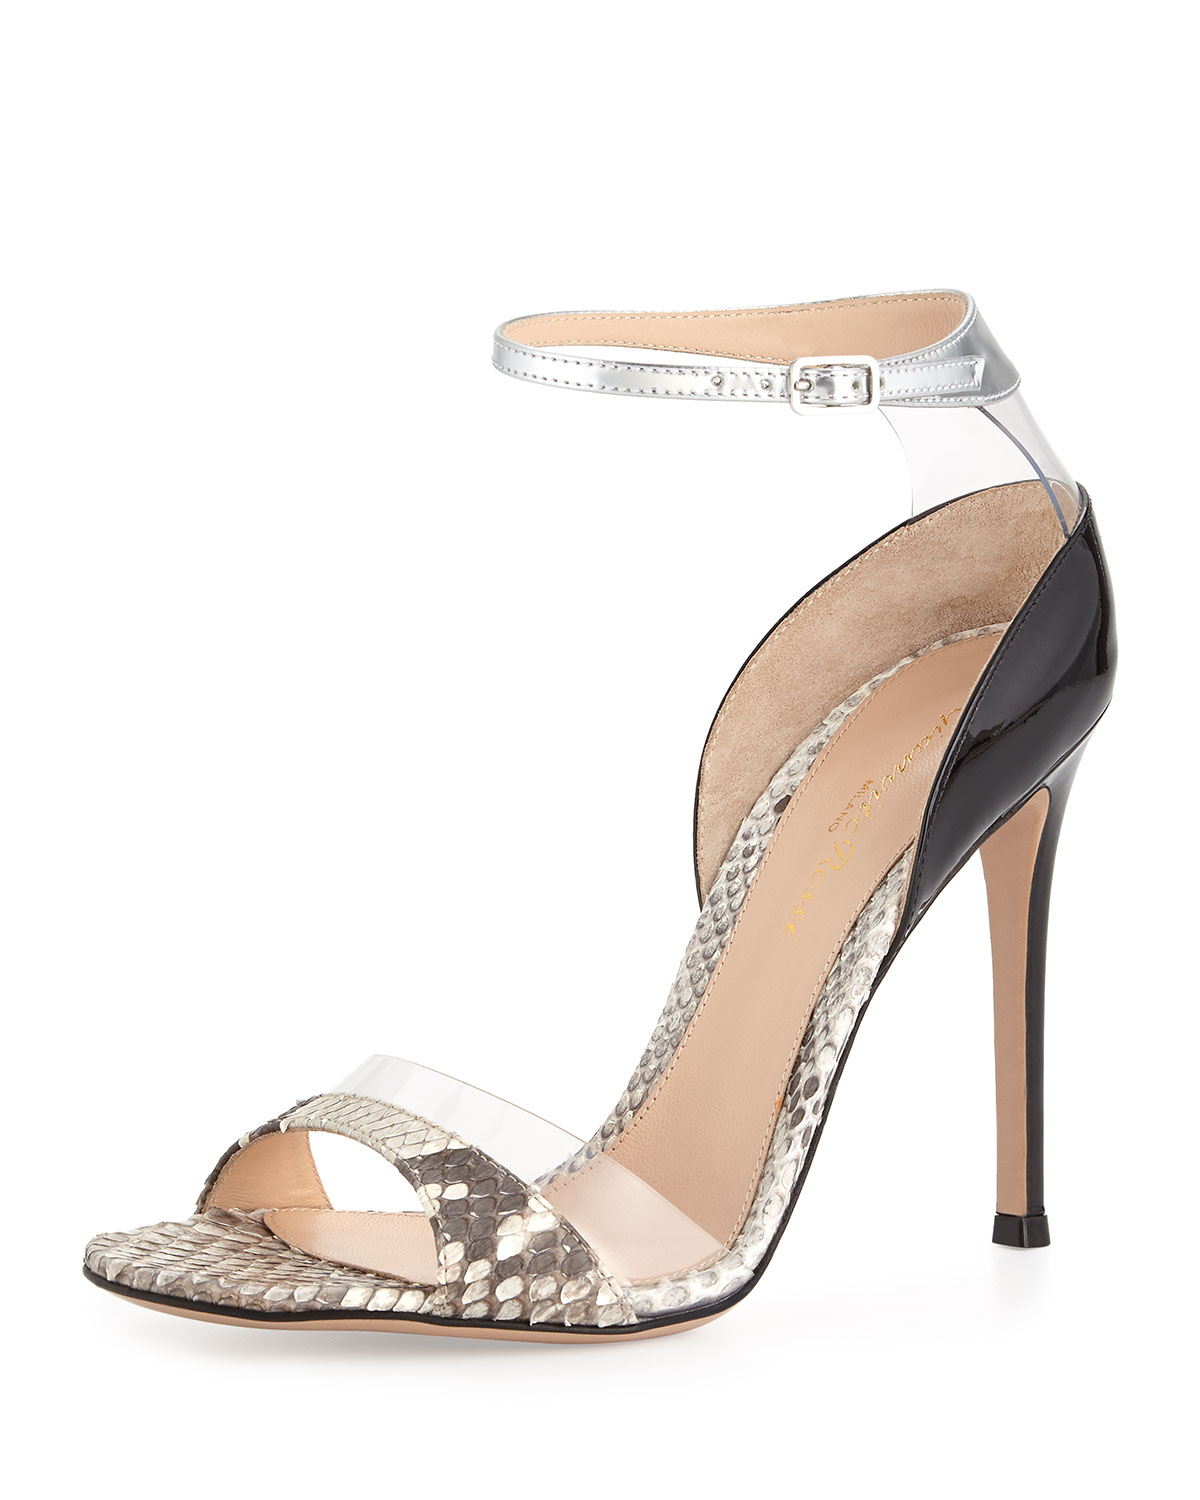 Gianvito Rossi Phillip Ankle Cuff Pumps popular sale online free shipping low cost low price sale online 8zZBwZ